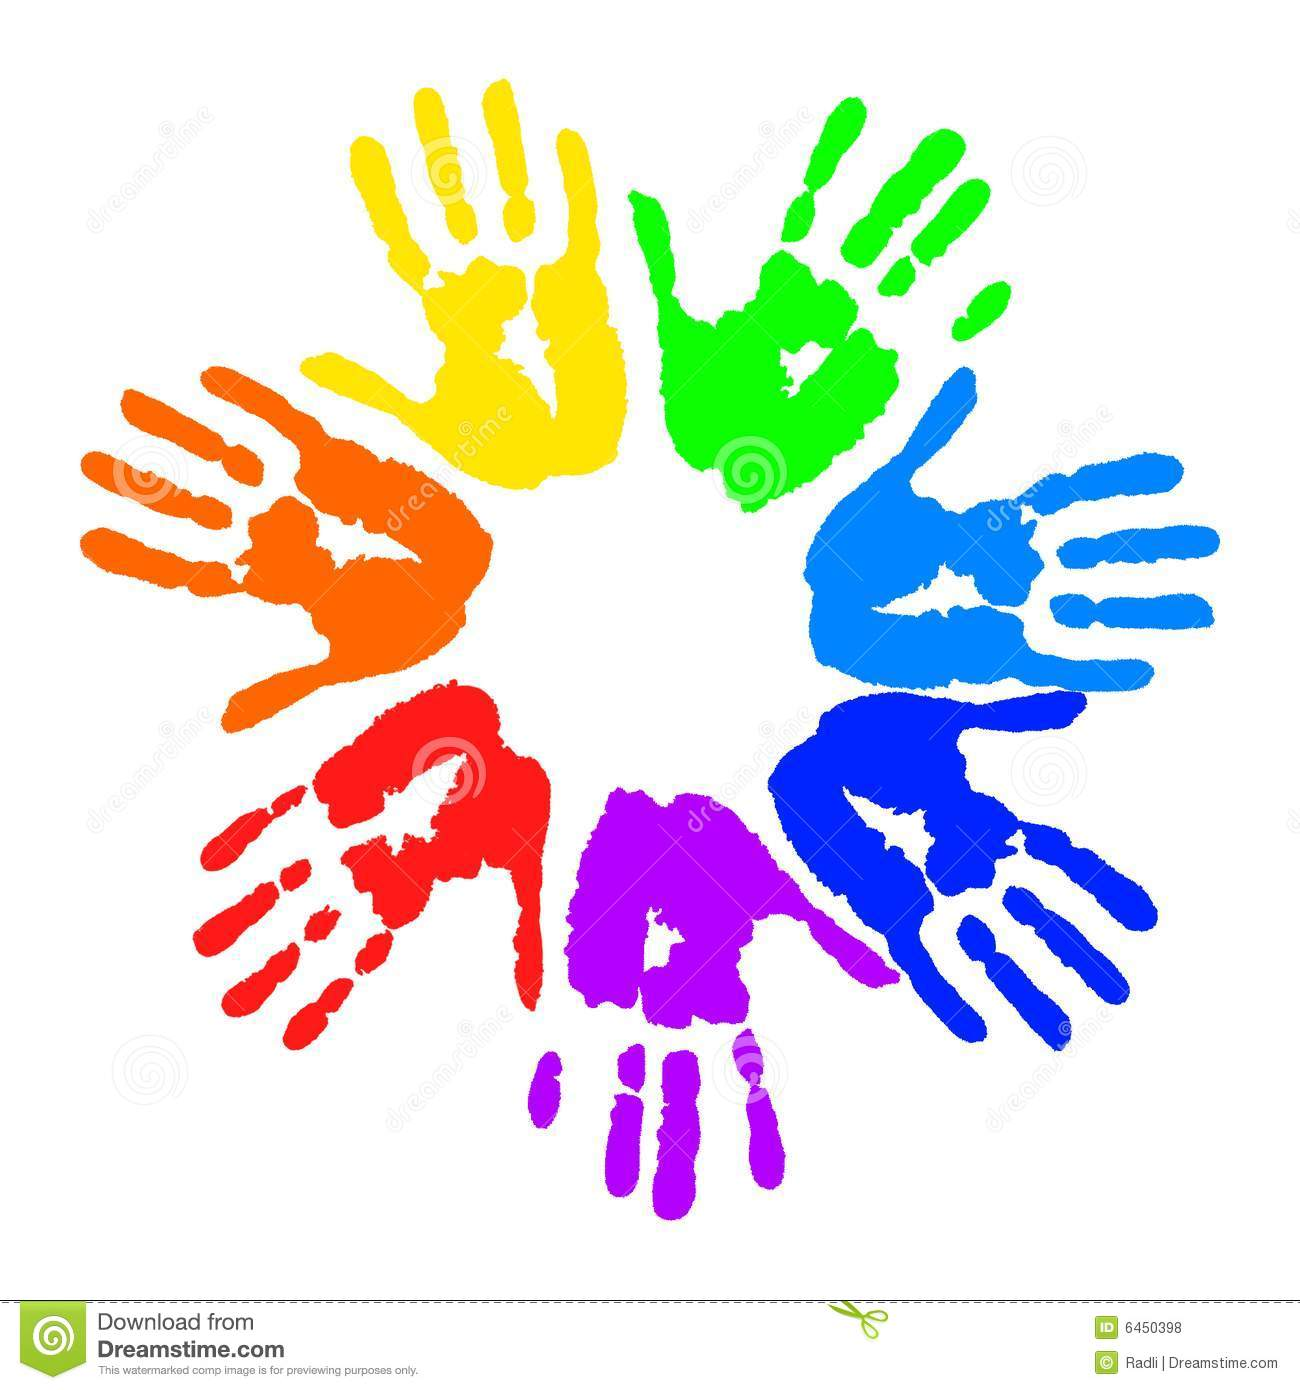 Children-s hand prints clipart picture free stock Kids Handprint Clipart | Clipart Panda - Free Clipart Images picture free stock